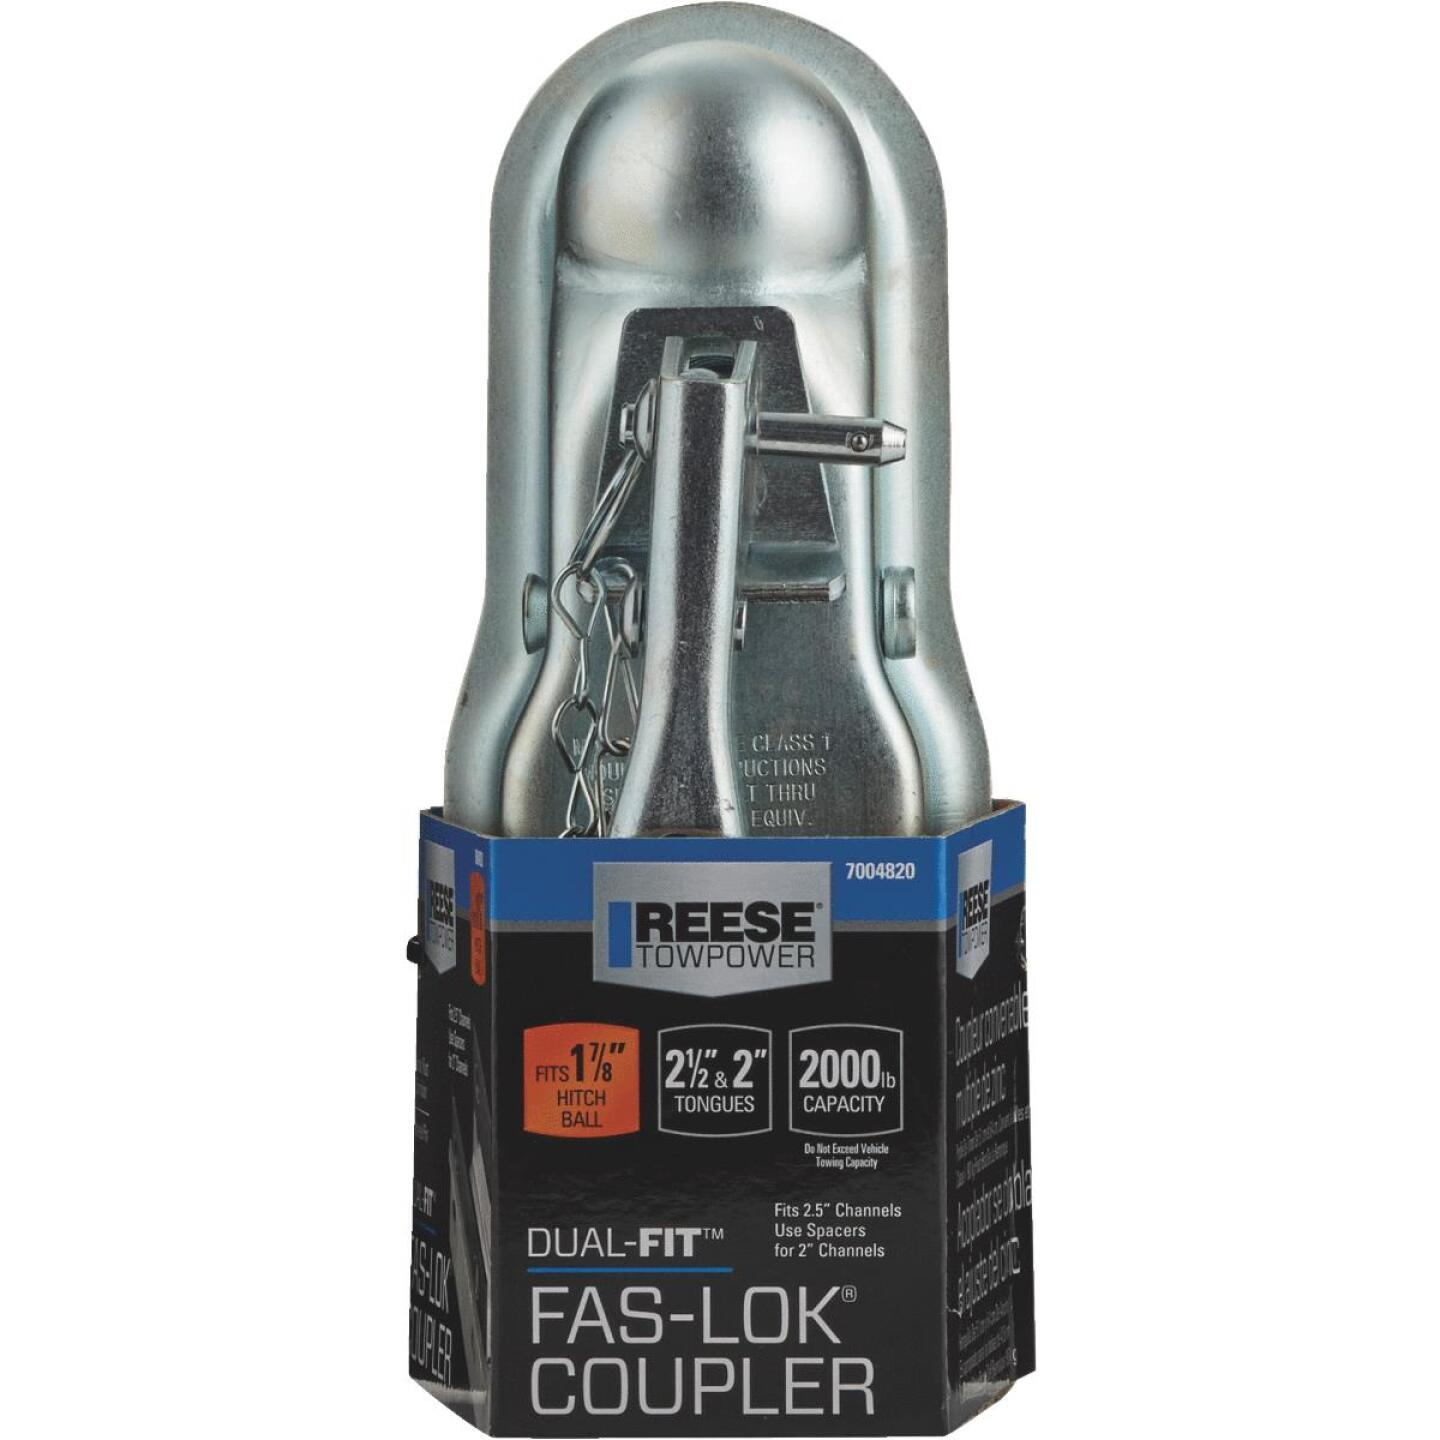 Reese Towpower Dual-Fit Fas-Lok 1-7/8 In. Ball Class I Trailer Coupler Image 2